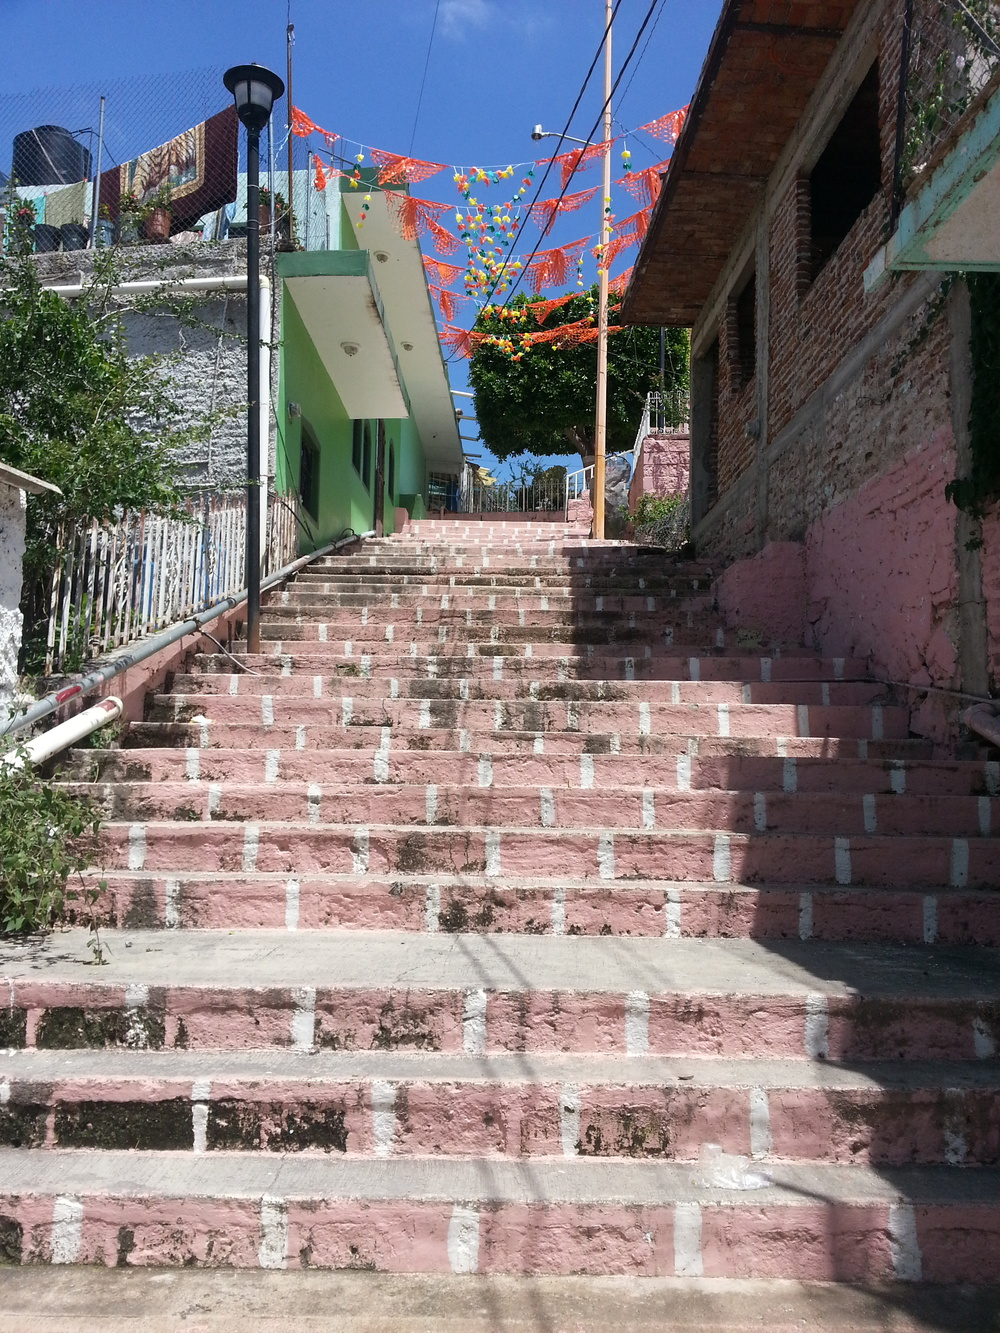 Steps to the church on the hill